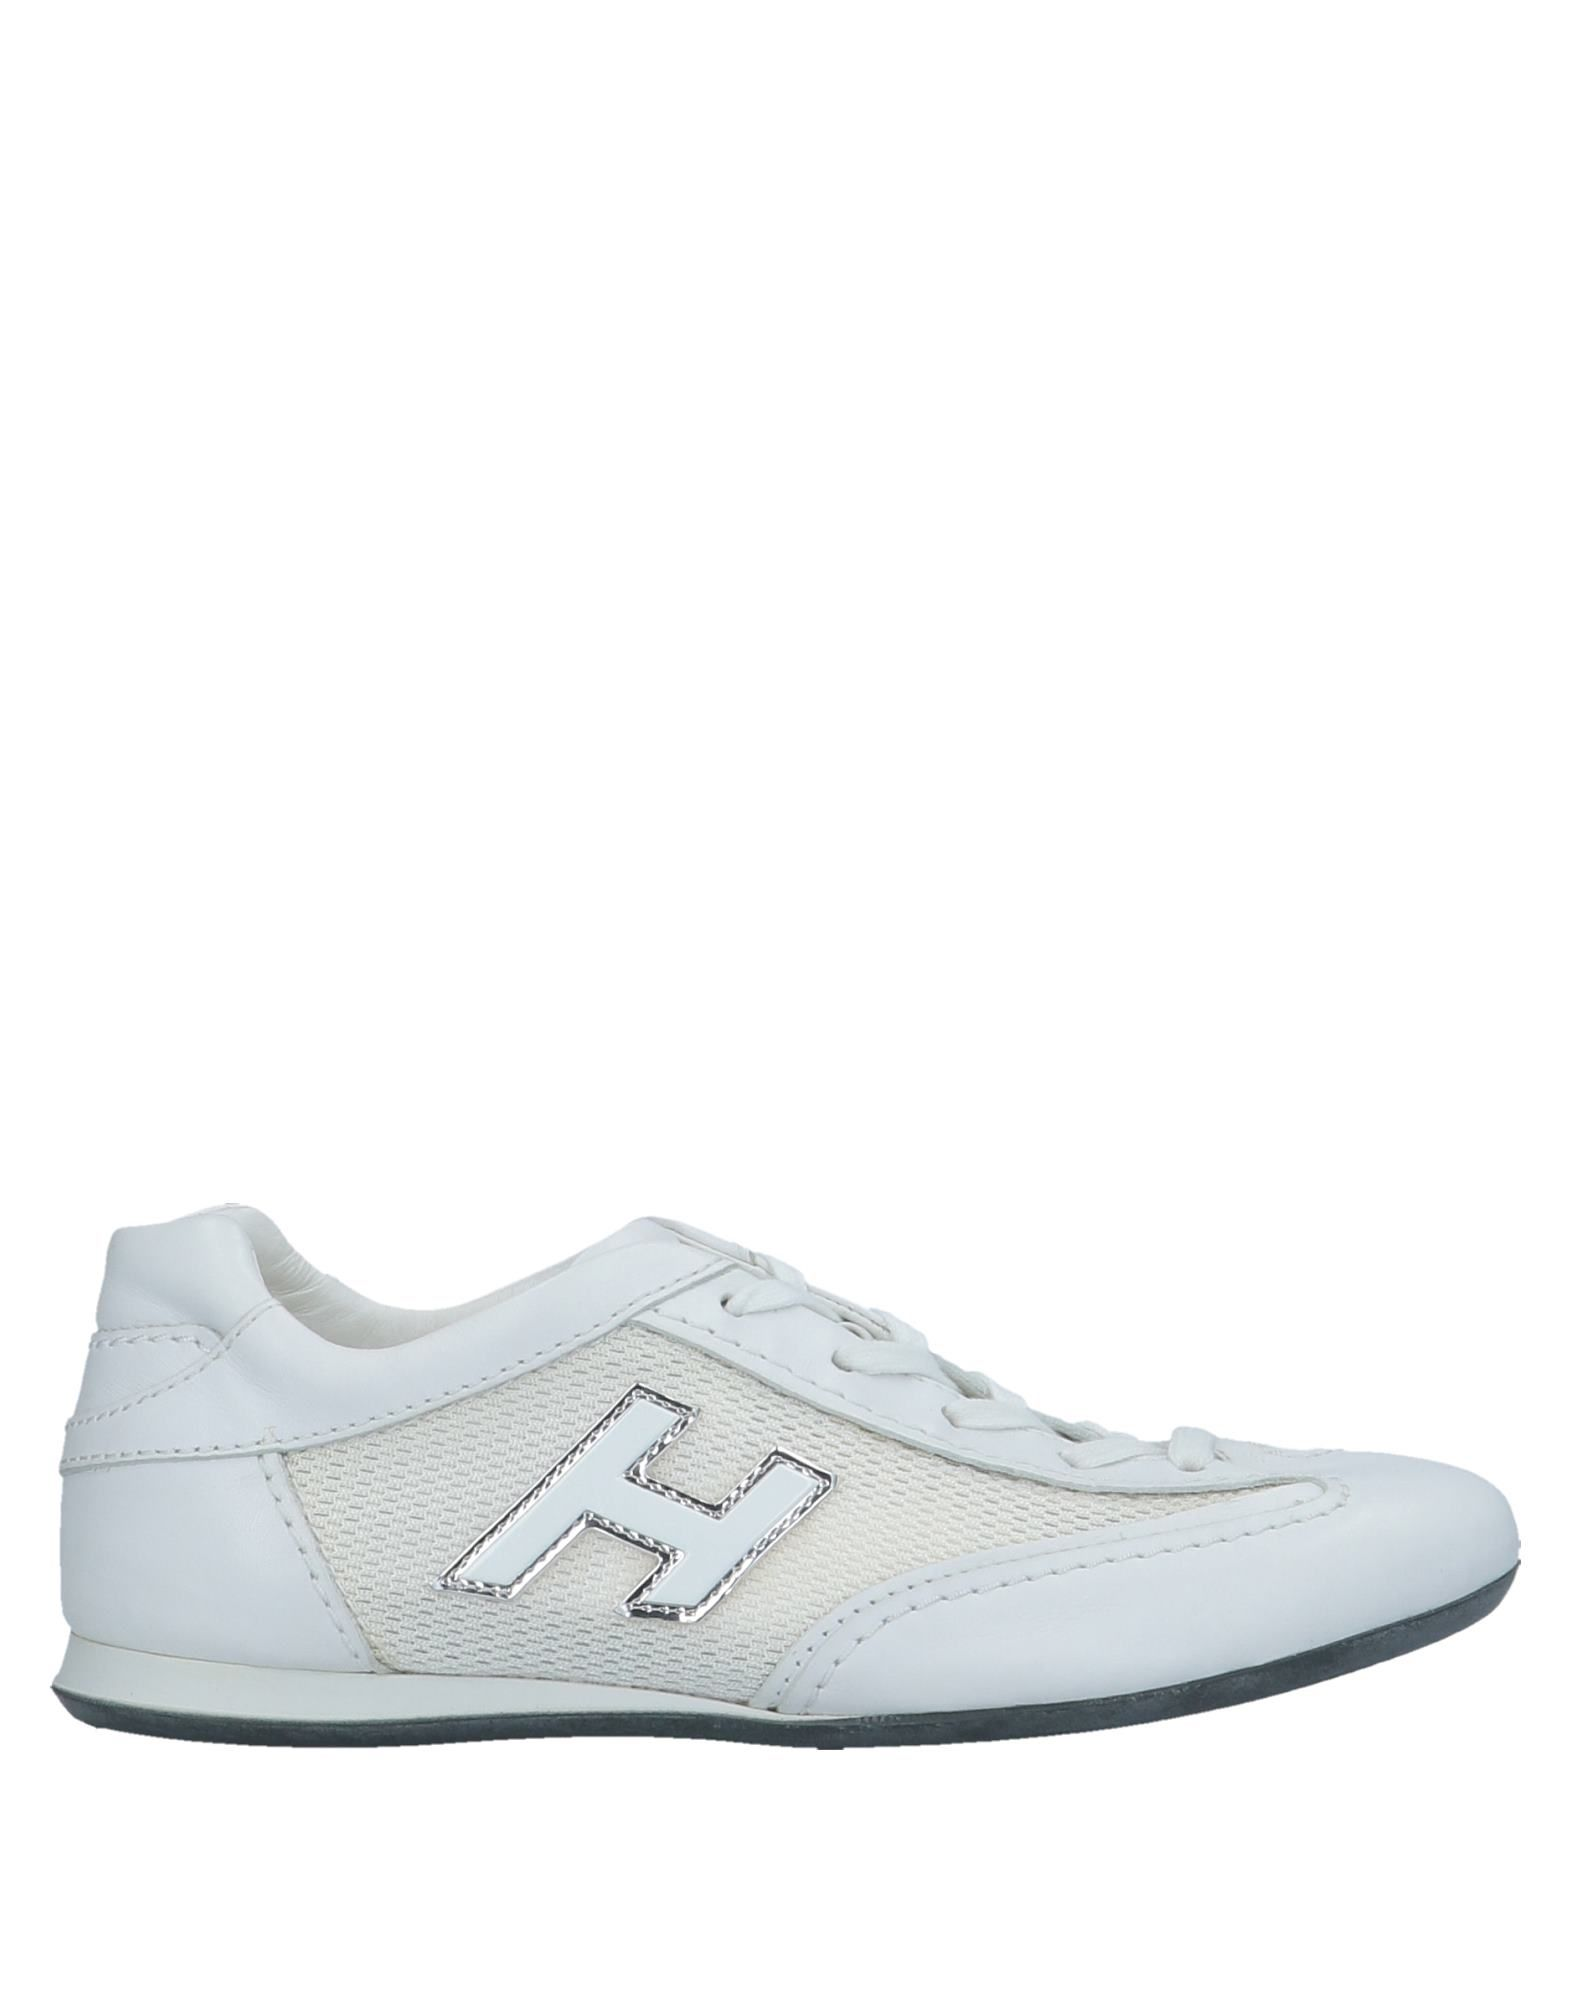 HOGAN Sneakers. techno fabric, logo, solid color, laces, round toeline, flat, leather lining, rubber cleated sole, contains non-textile parts of animal origin. Soft Leather, Textile fibers